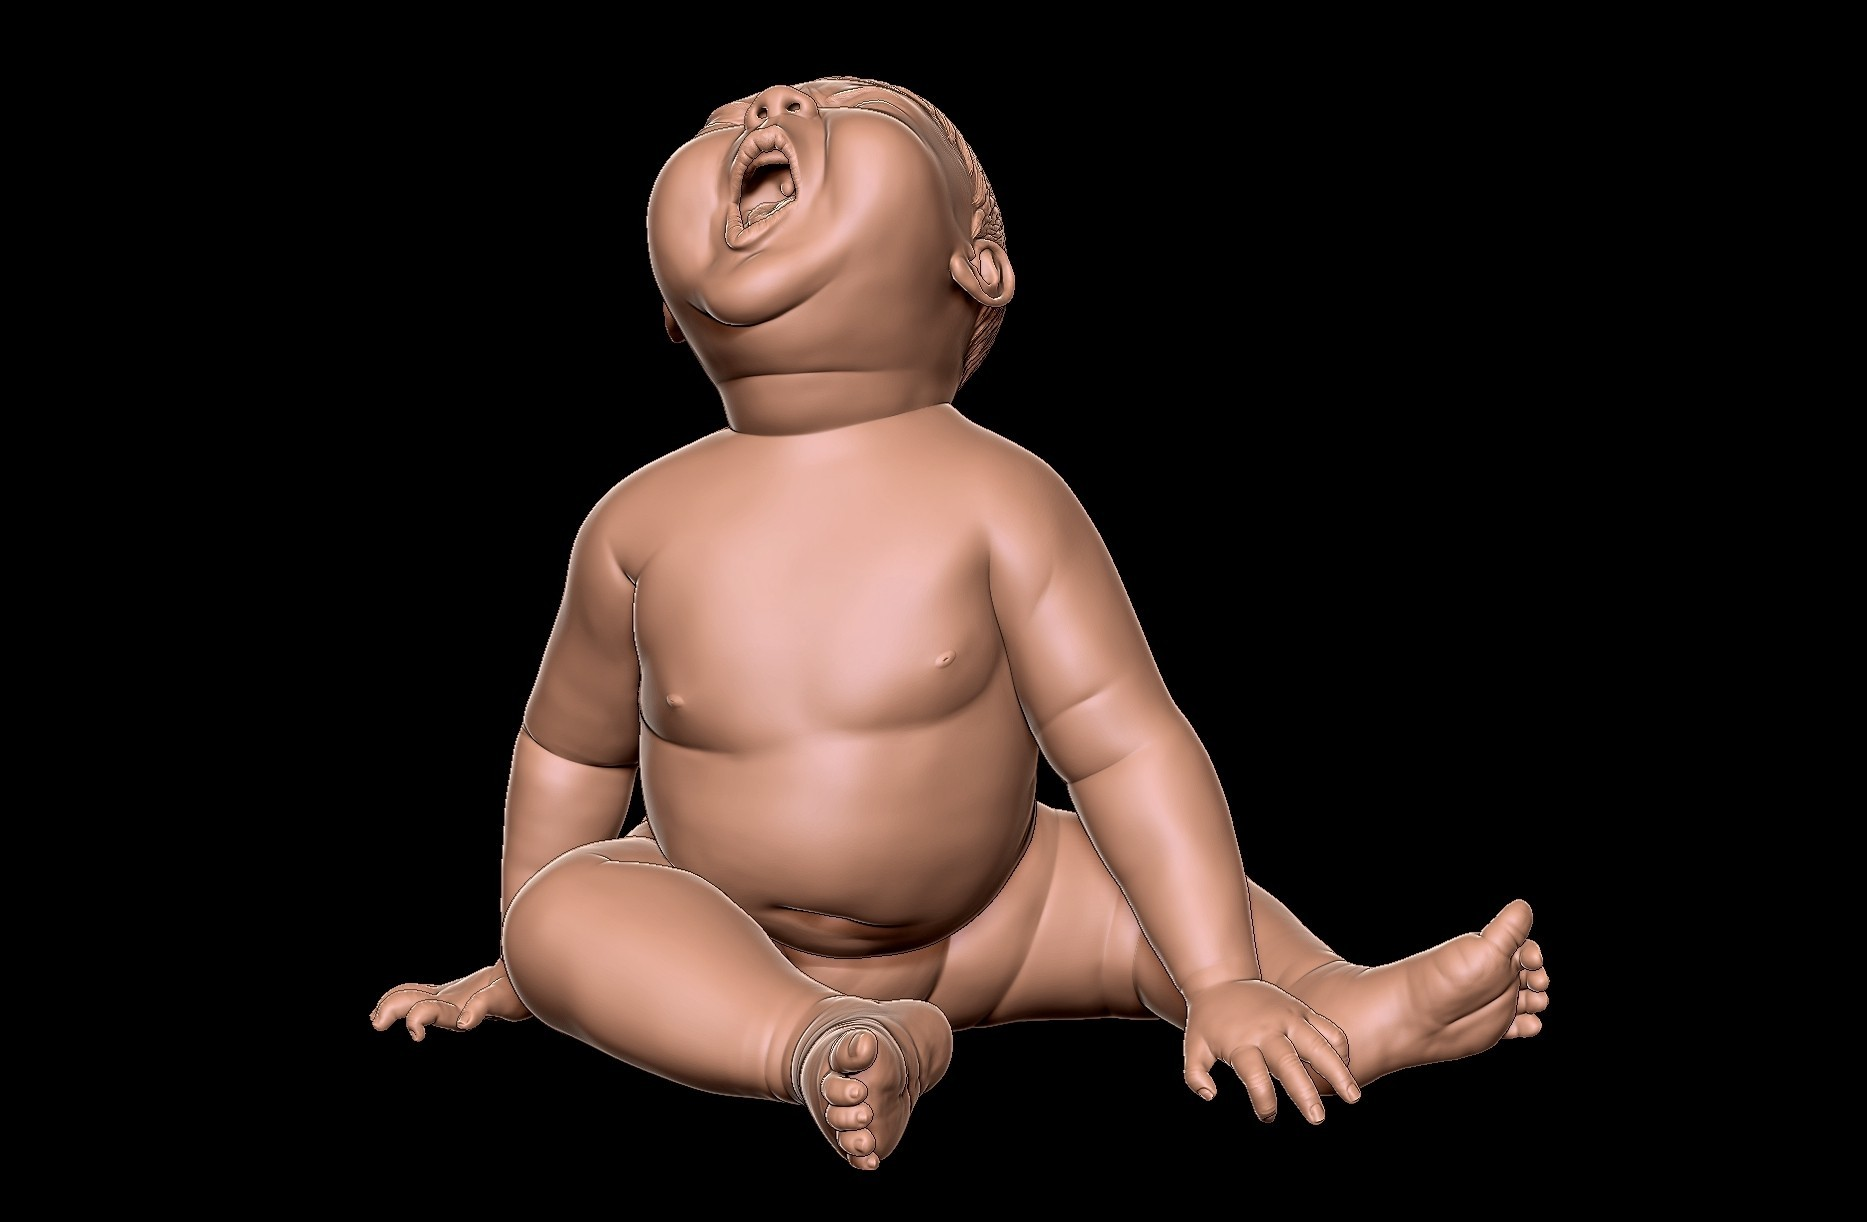 angry_baby_v02_02c.jpg Download OBJ file Angry baby improved version • 3D printing design, udograf